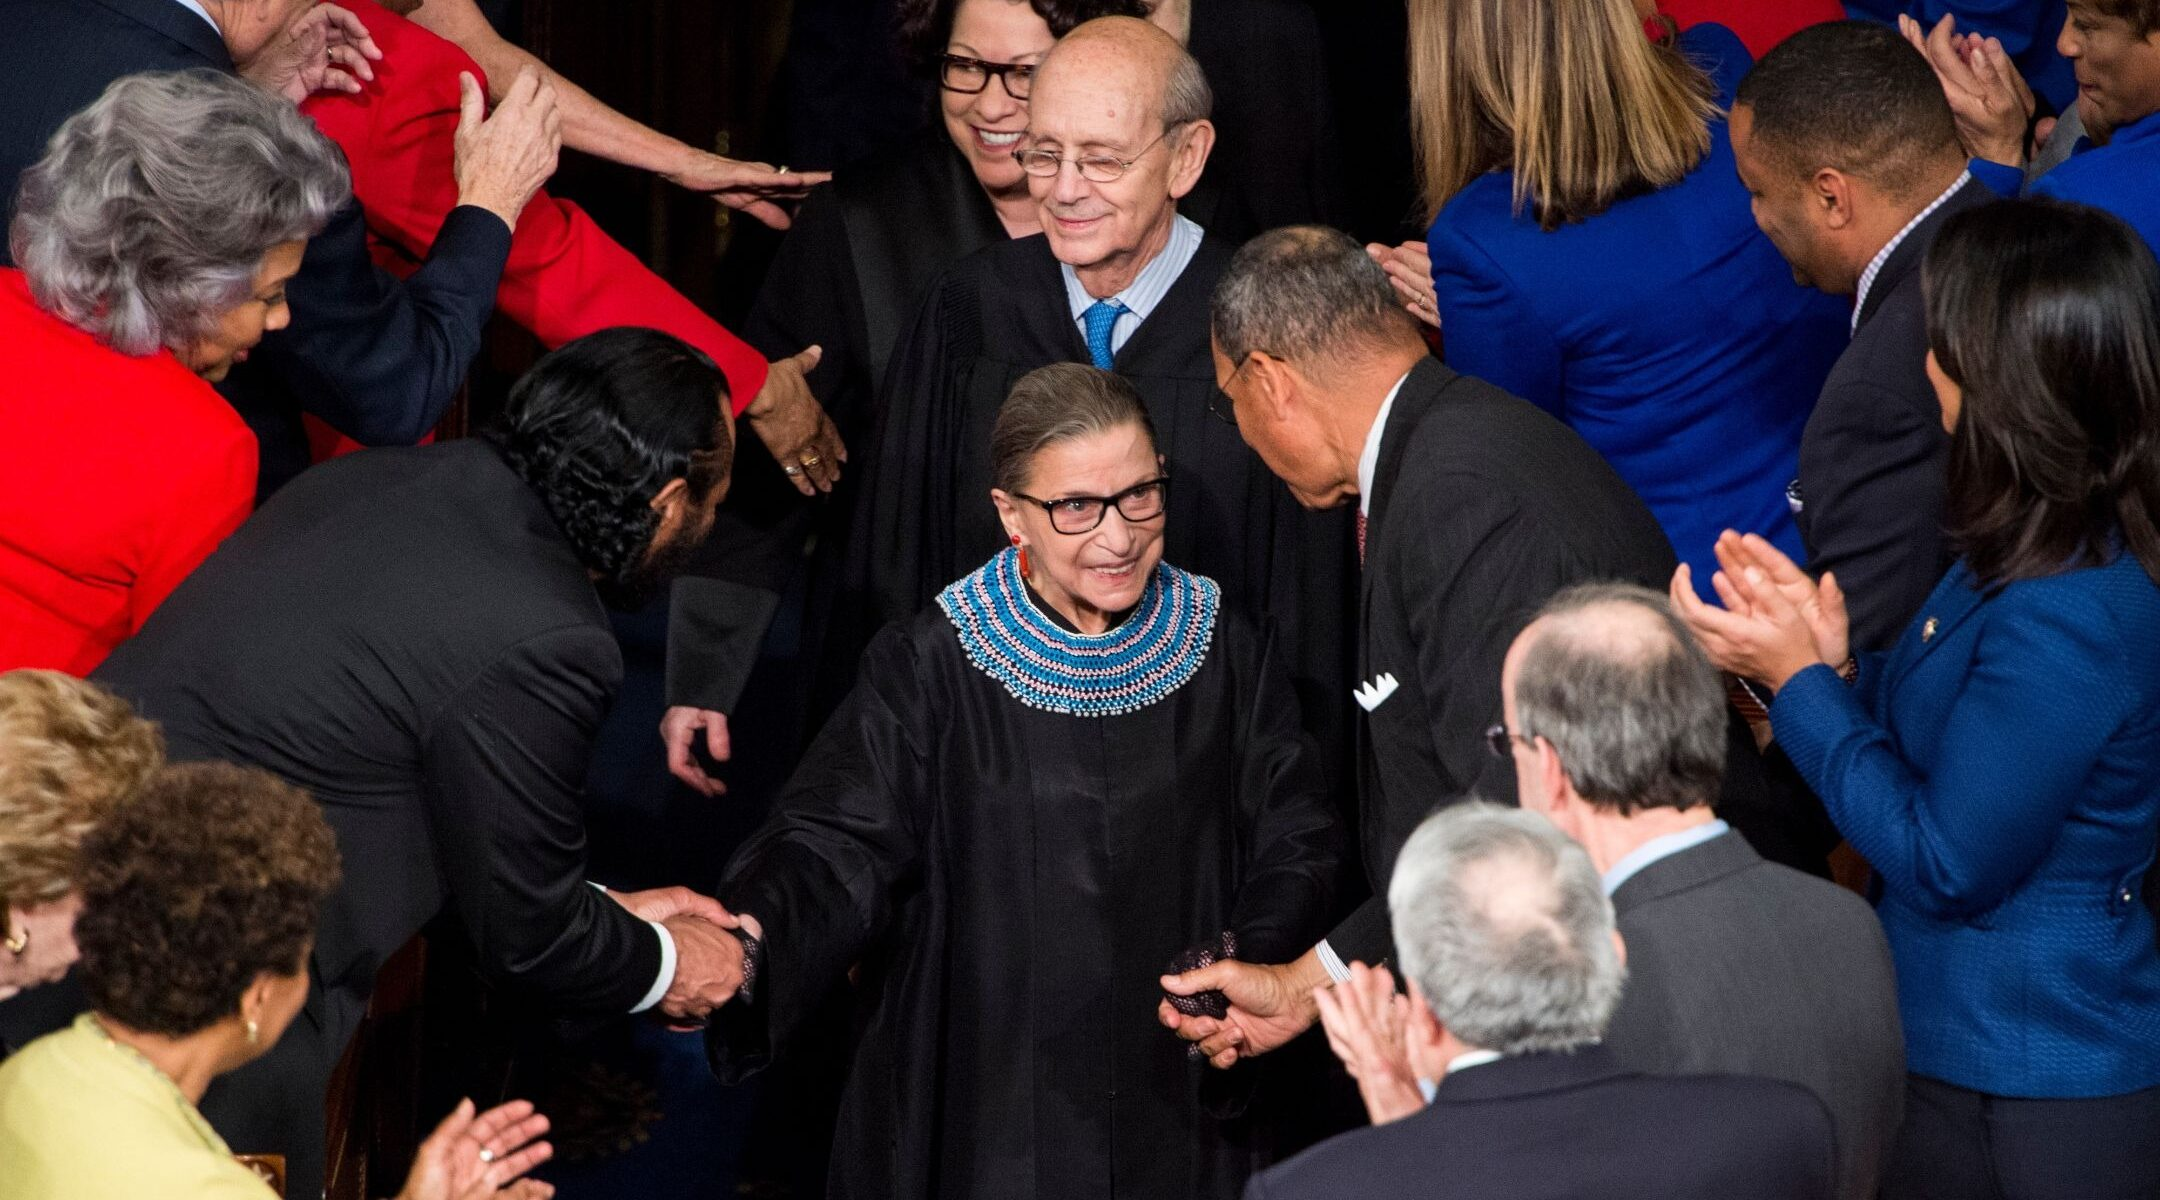 Supreme Court Justice Ruth Bader Ginsburg arrives for President Barack Obama's State of the Union address in the Capitol, Jan. 20, 2015. (Photo/JTA-Bill Clark-CQ Roll Call-Getty Images)